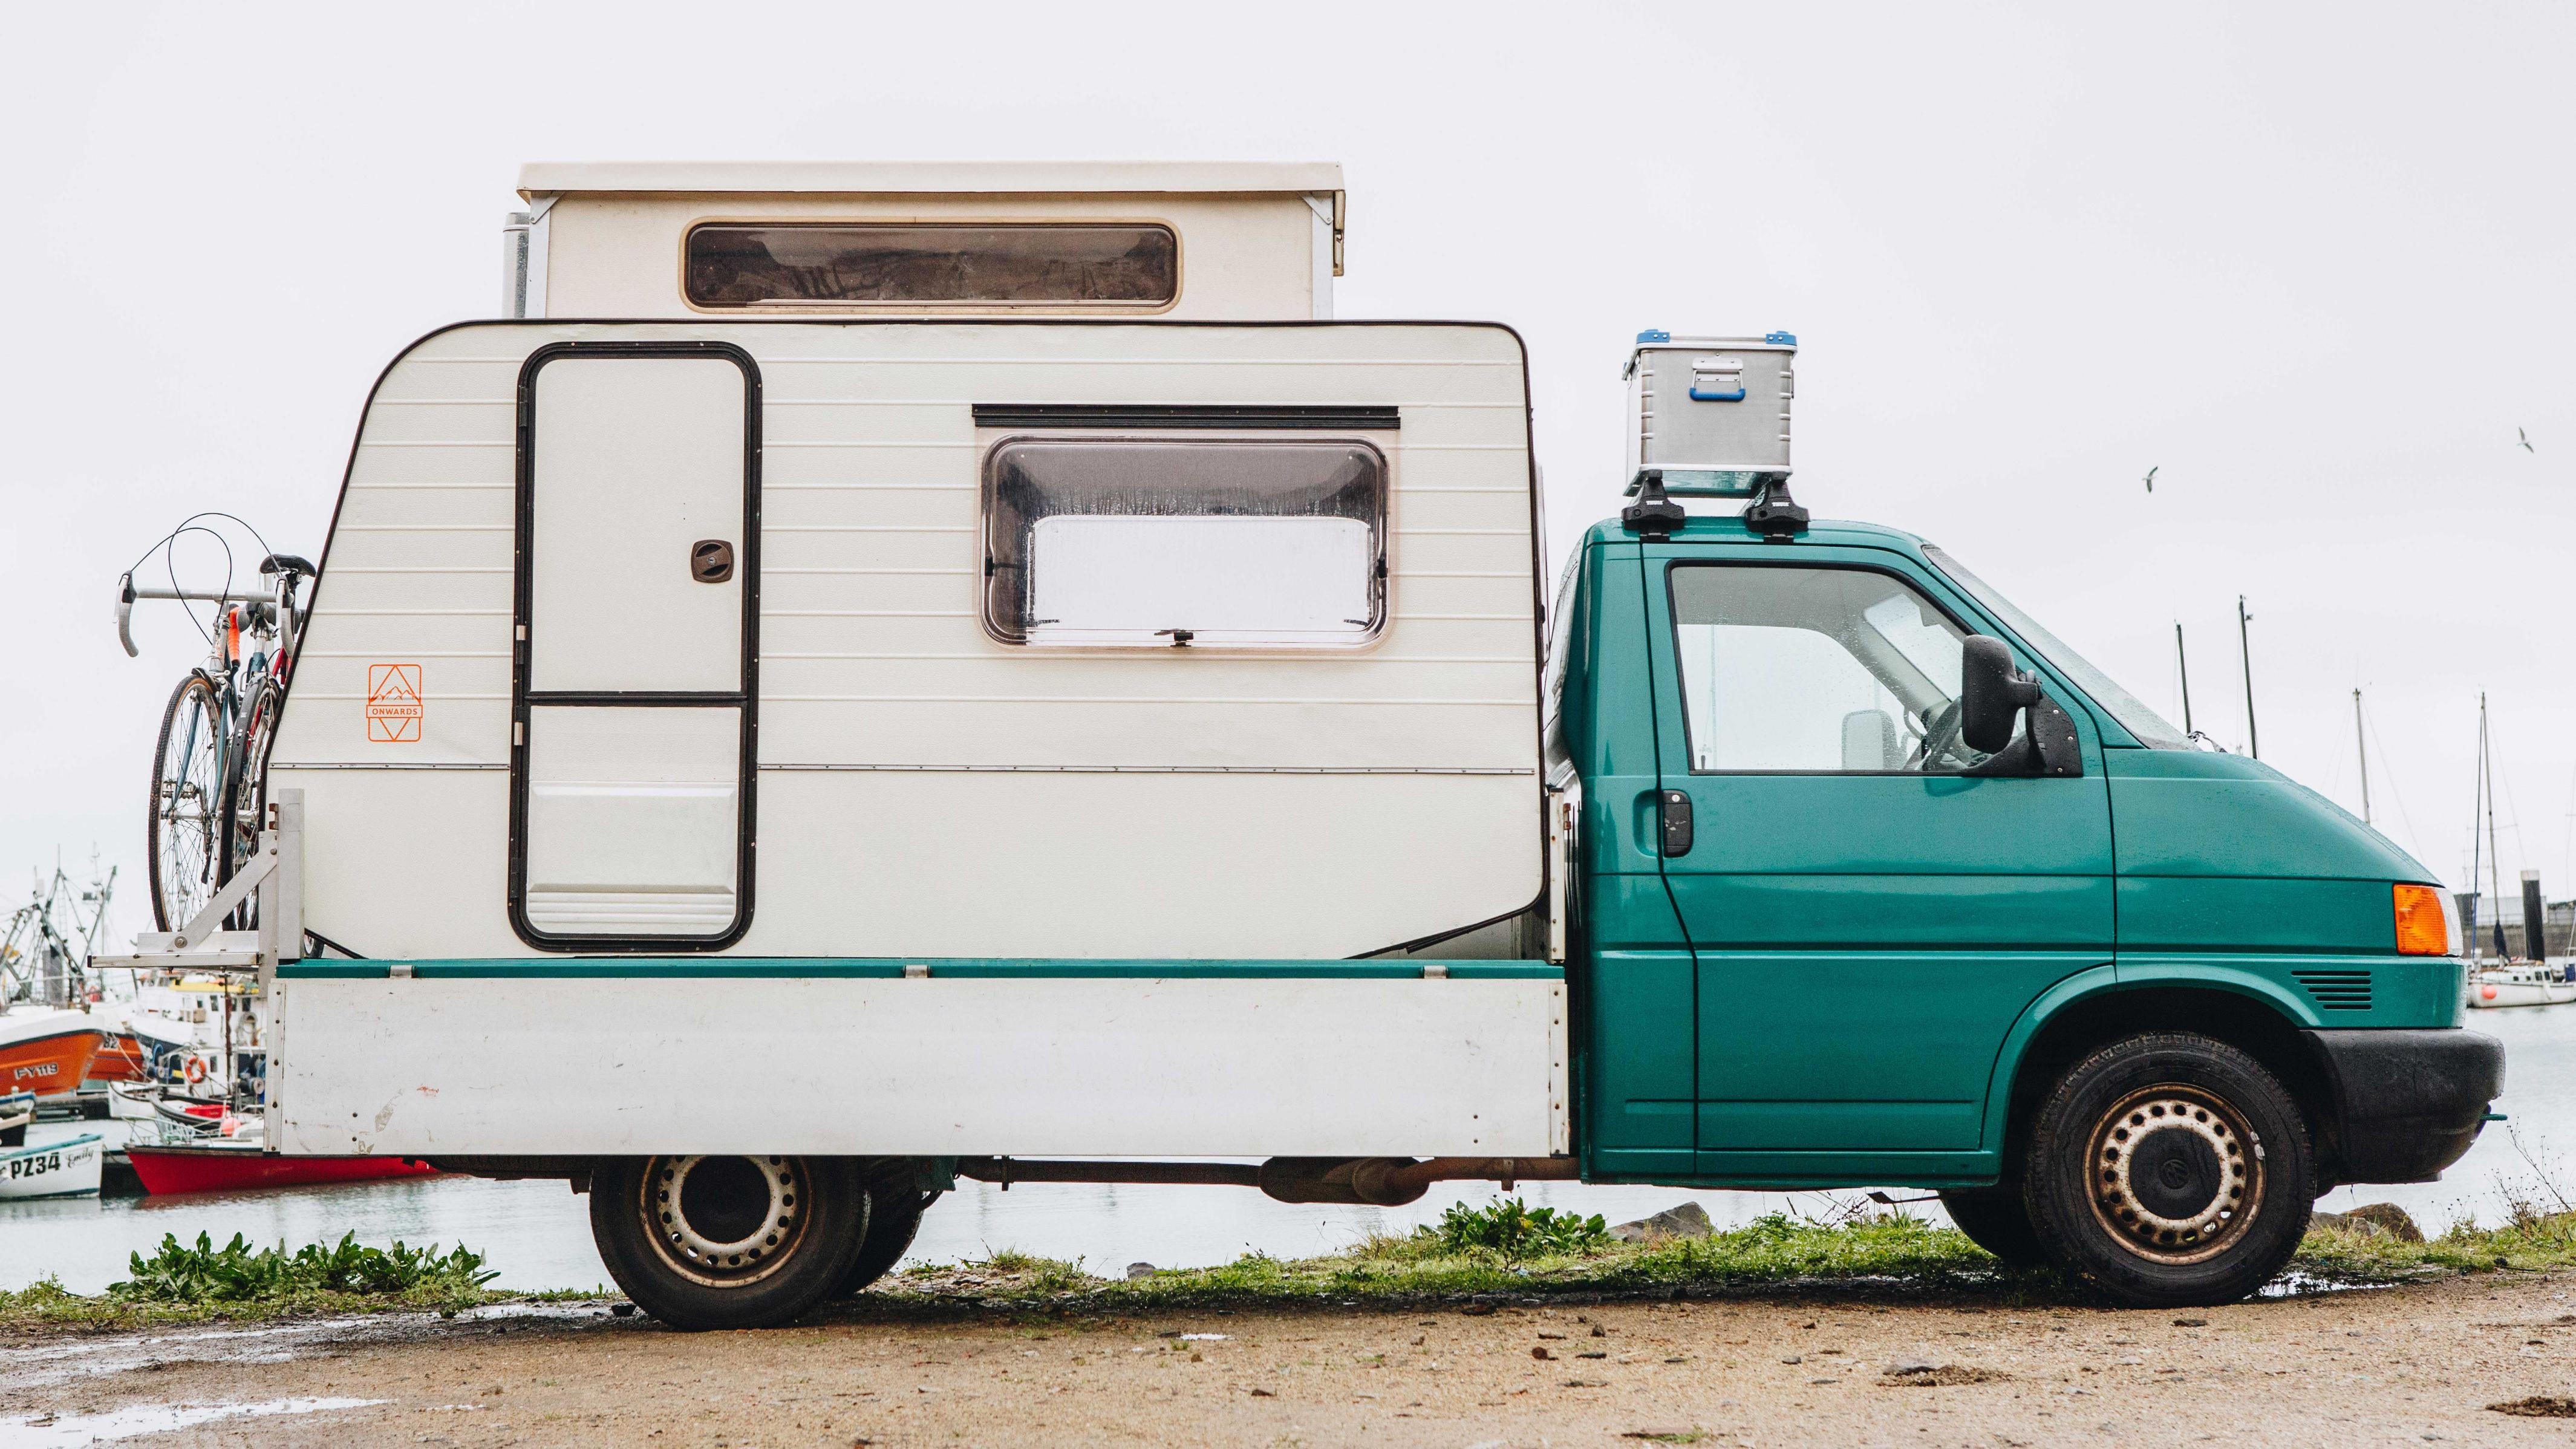 What it's really like to travel the world in a camper van